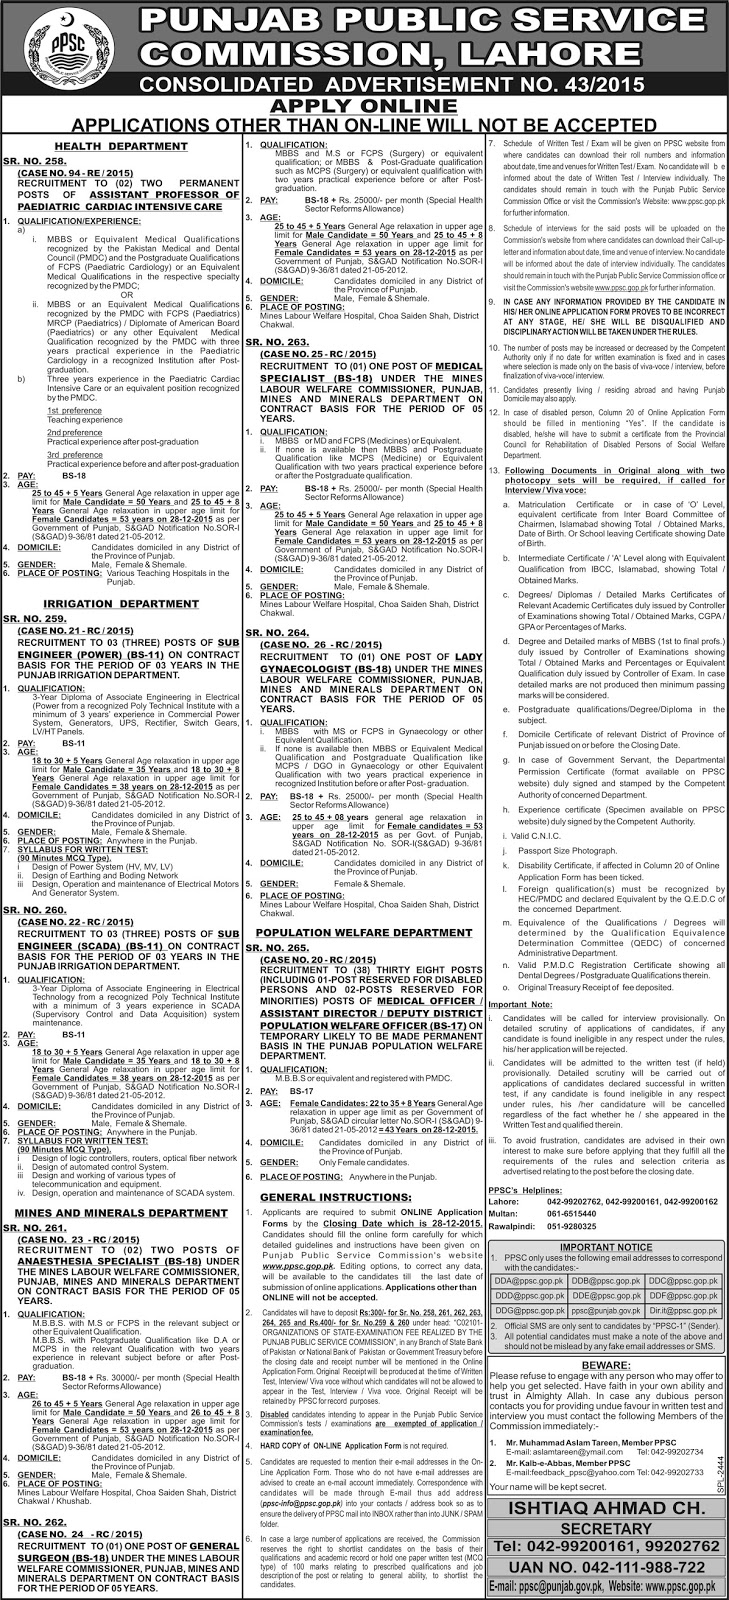 Engineers & Doctors Jobs in PPSC for Different Disciplines